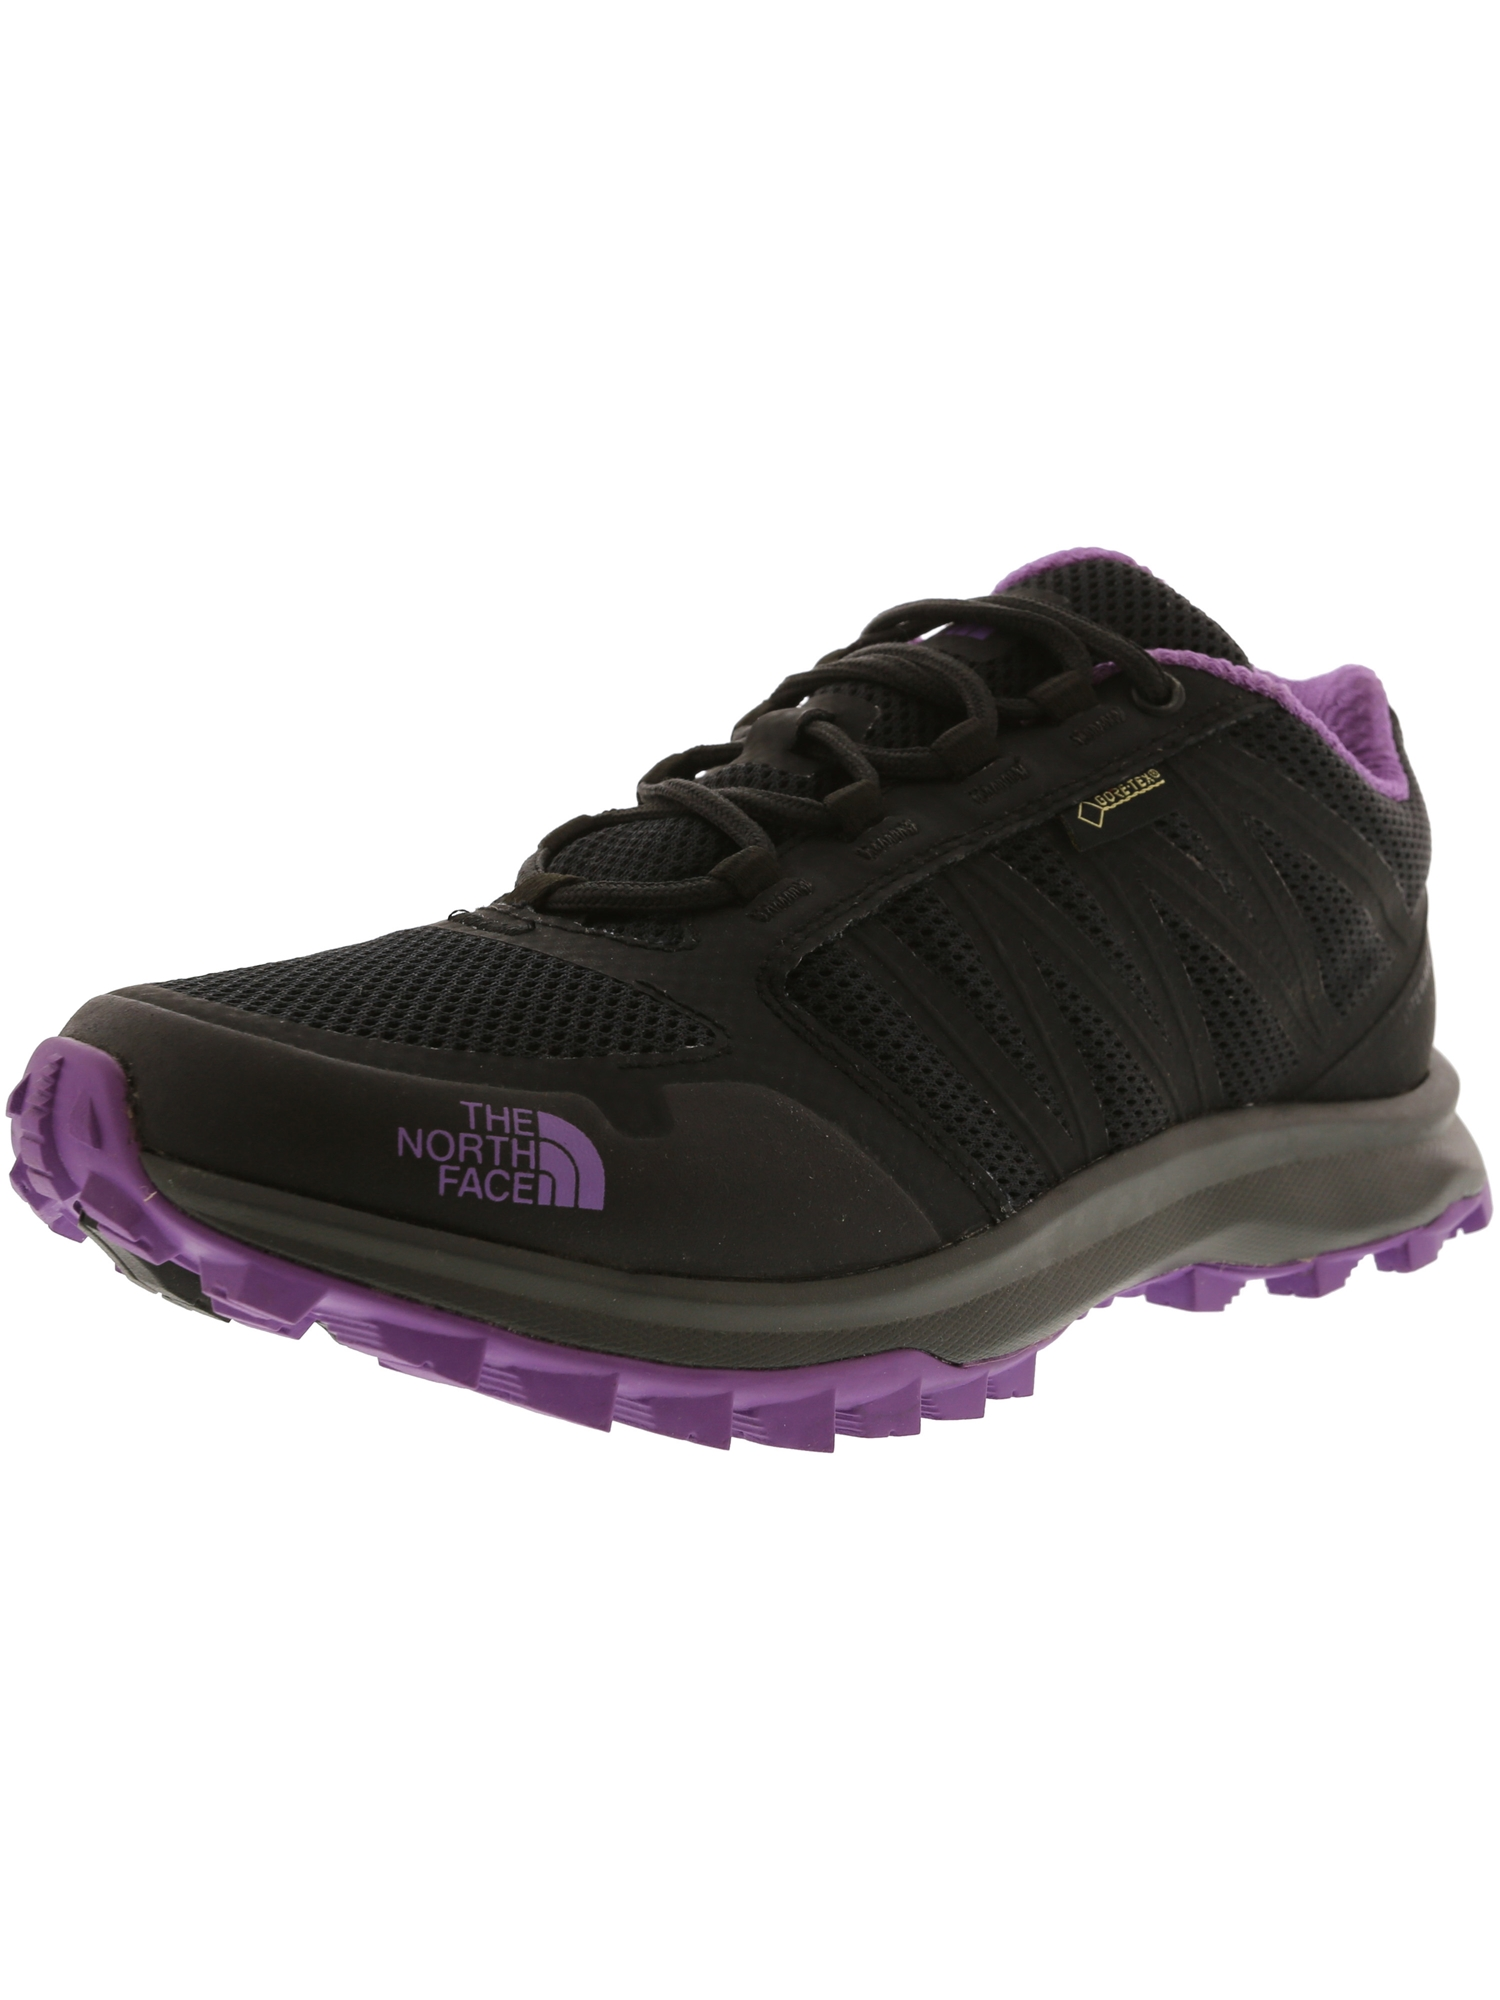 401a3bb42 The North Face Women's Litewave Fp Gtx Phantom Grey / Bellflower Purple  Ankle-High Fabric Trail Runner - 6M